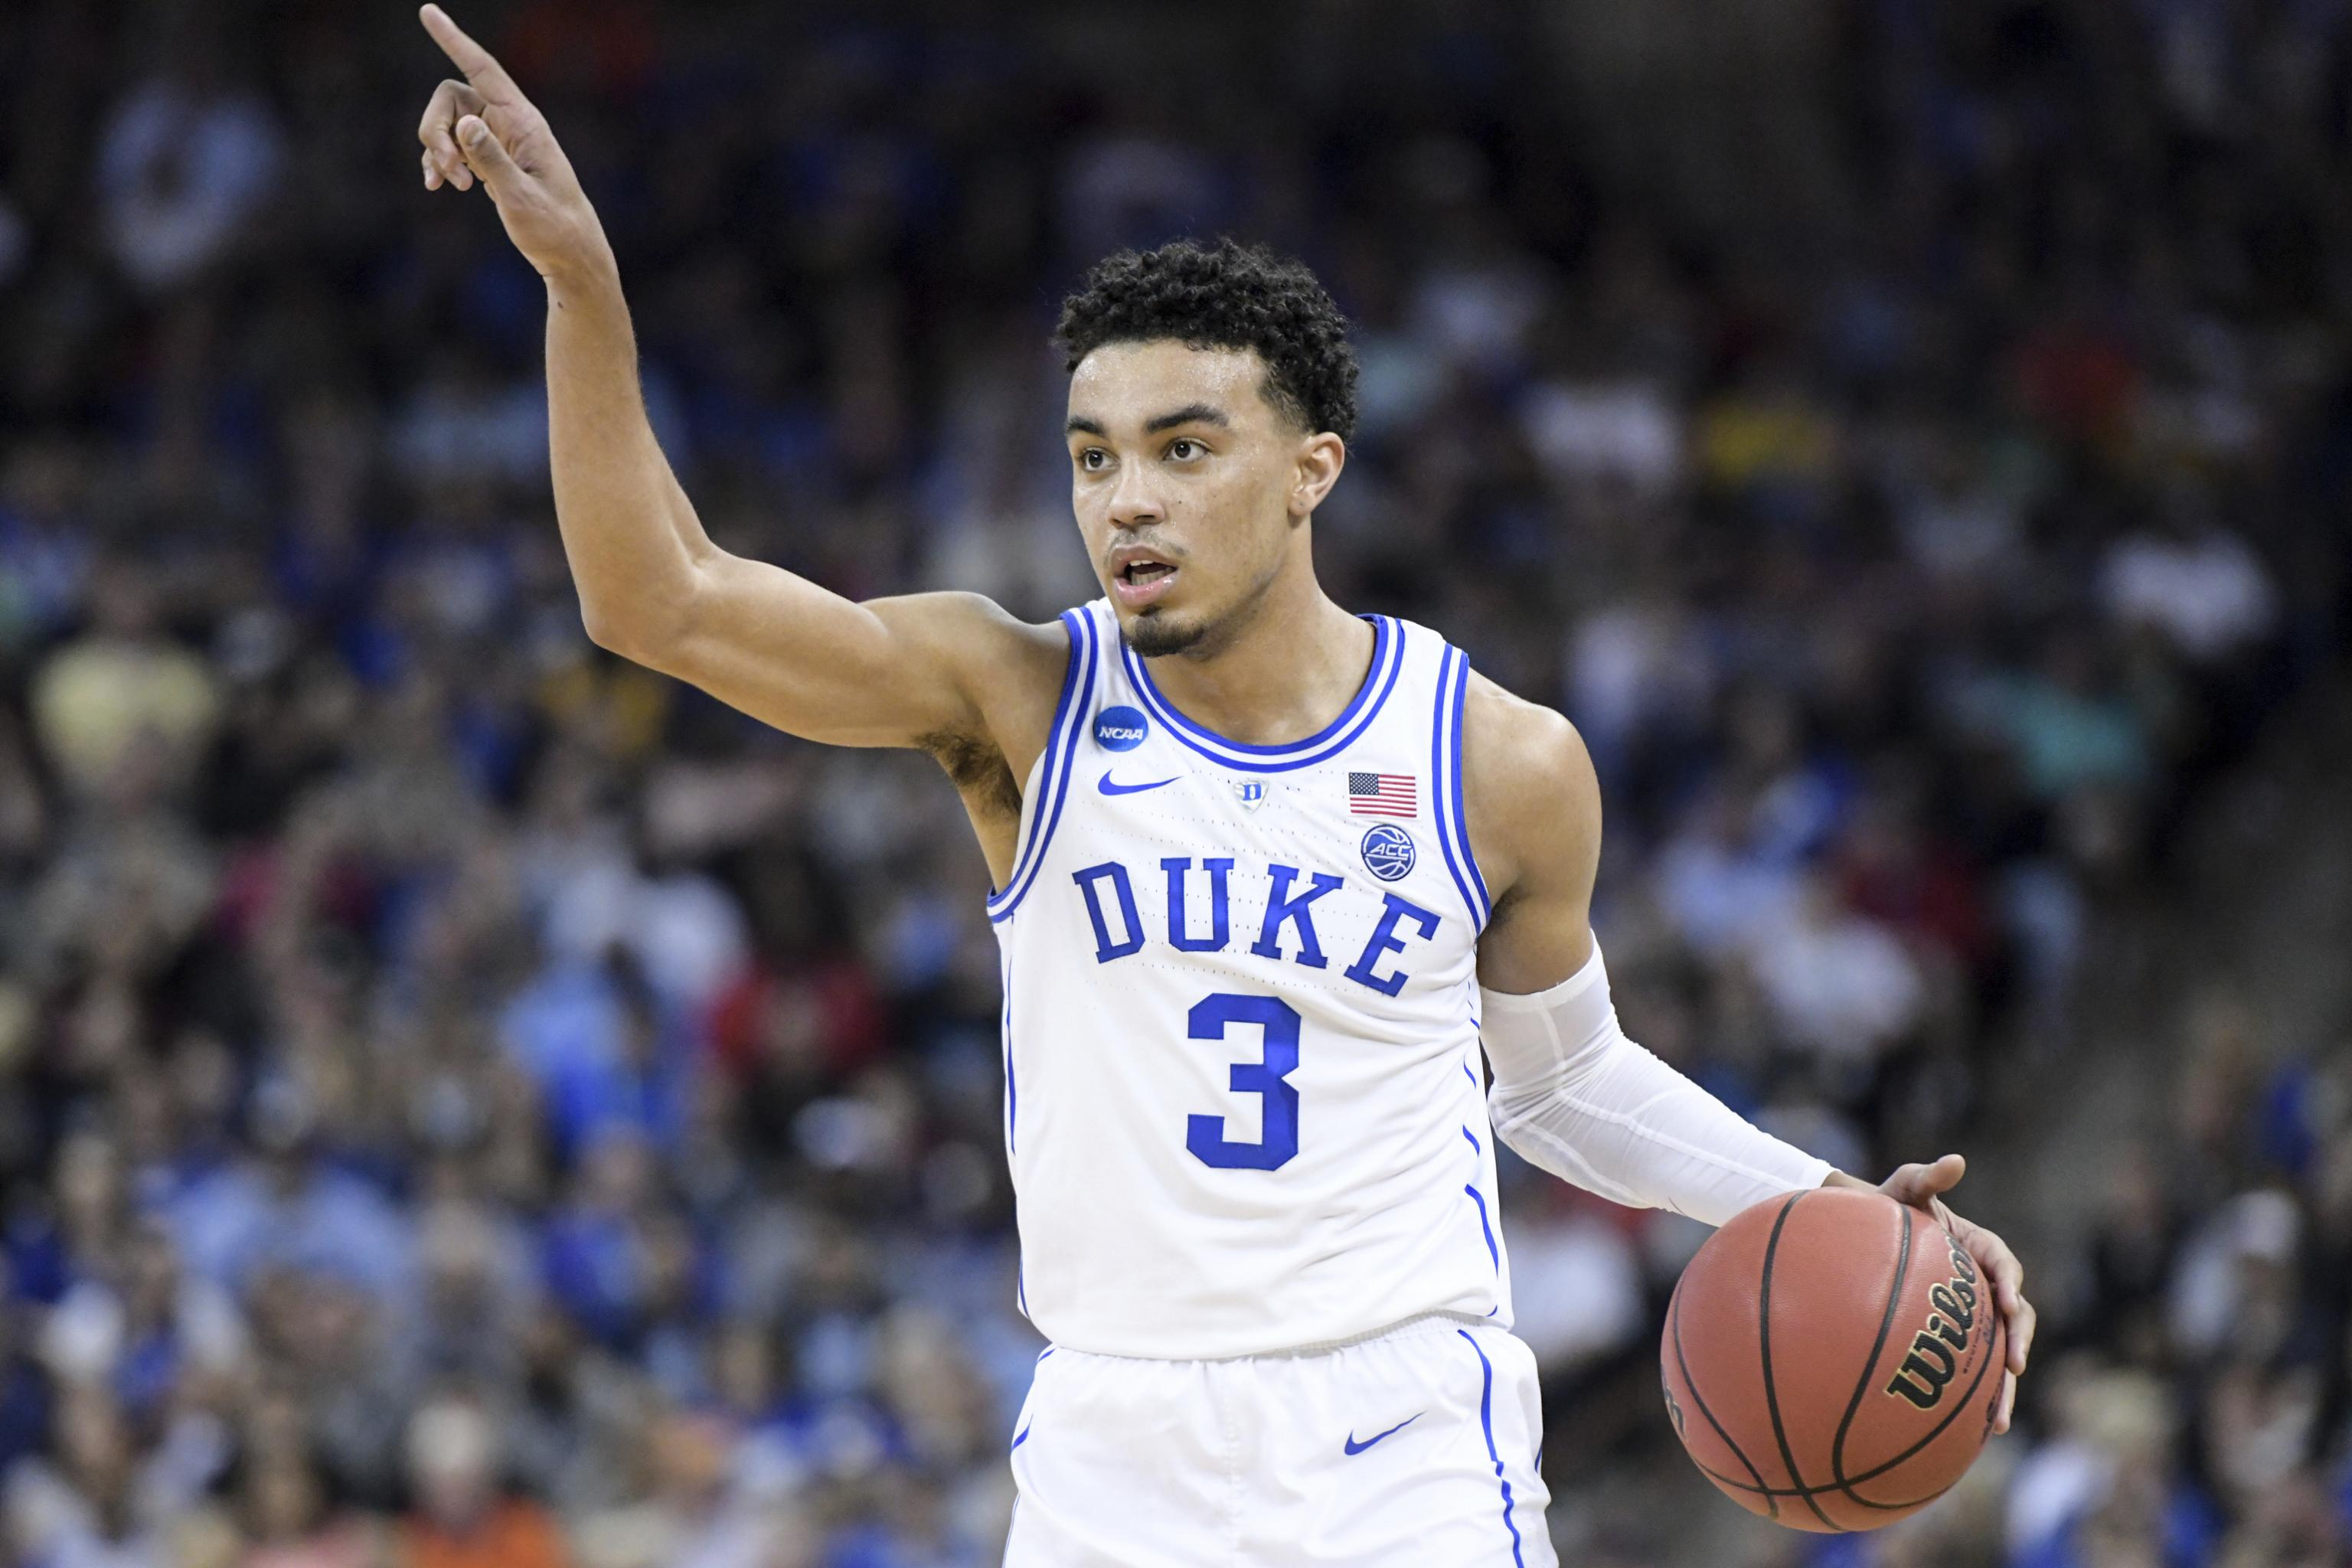 Duke's Tre Jones Out vs. Wofford with 'Minor' Foot Injury ...